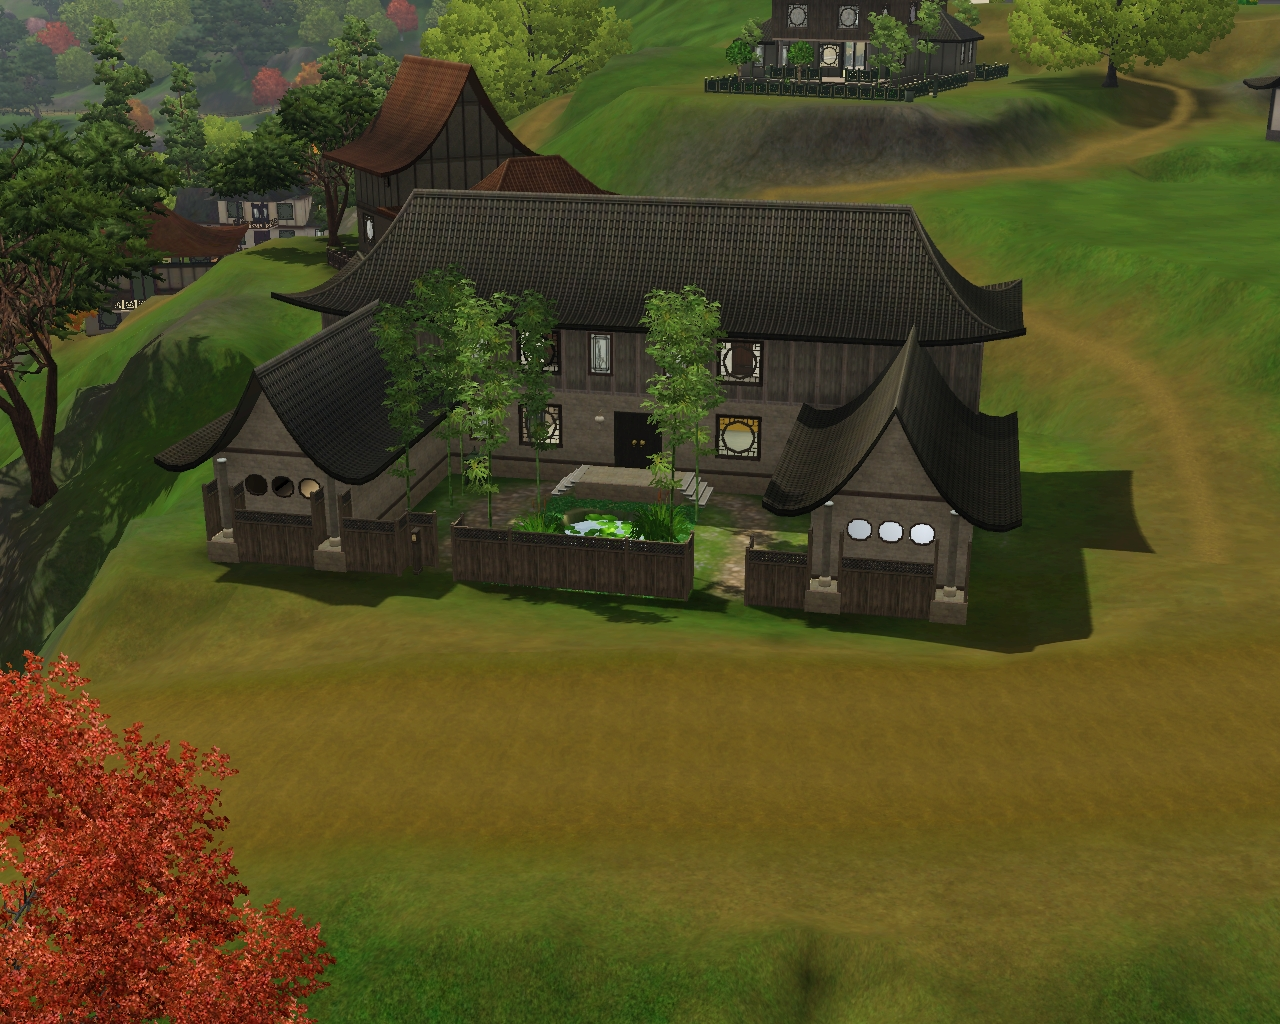 summer 39 s little sims 3 garden shang simla the sims 3 world adventures list of occupied houses